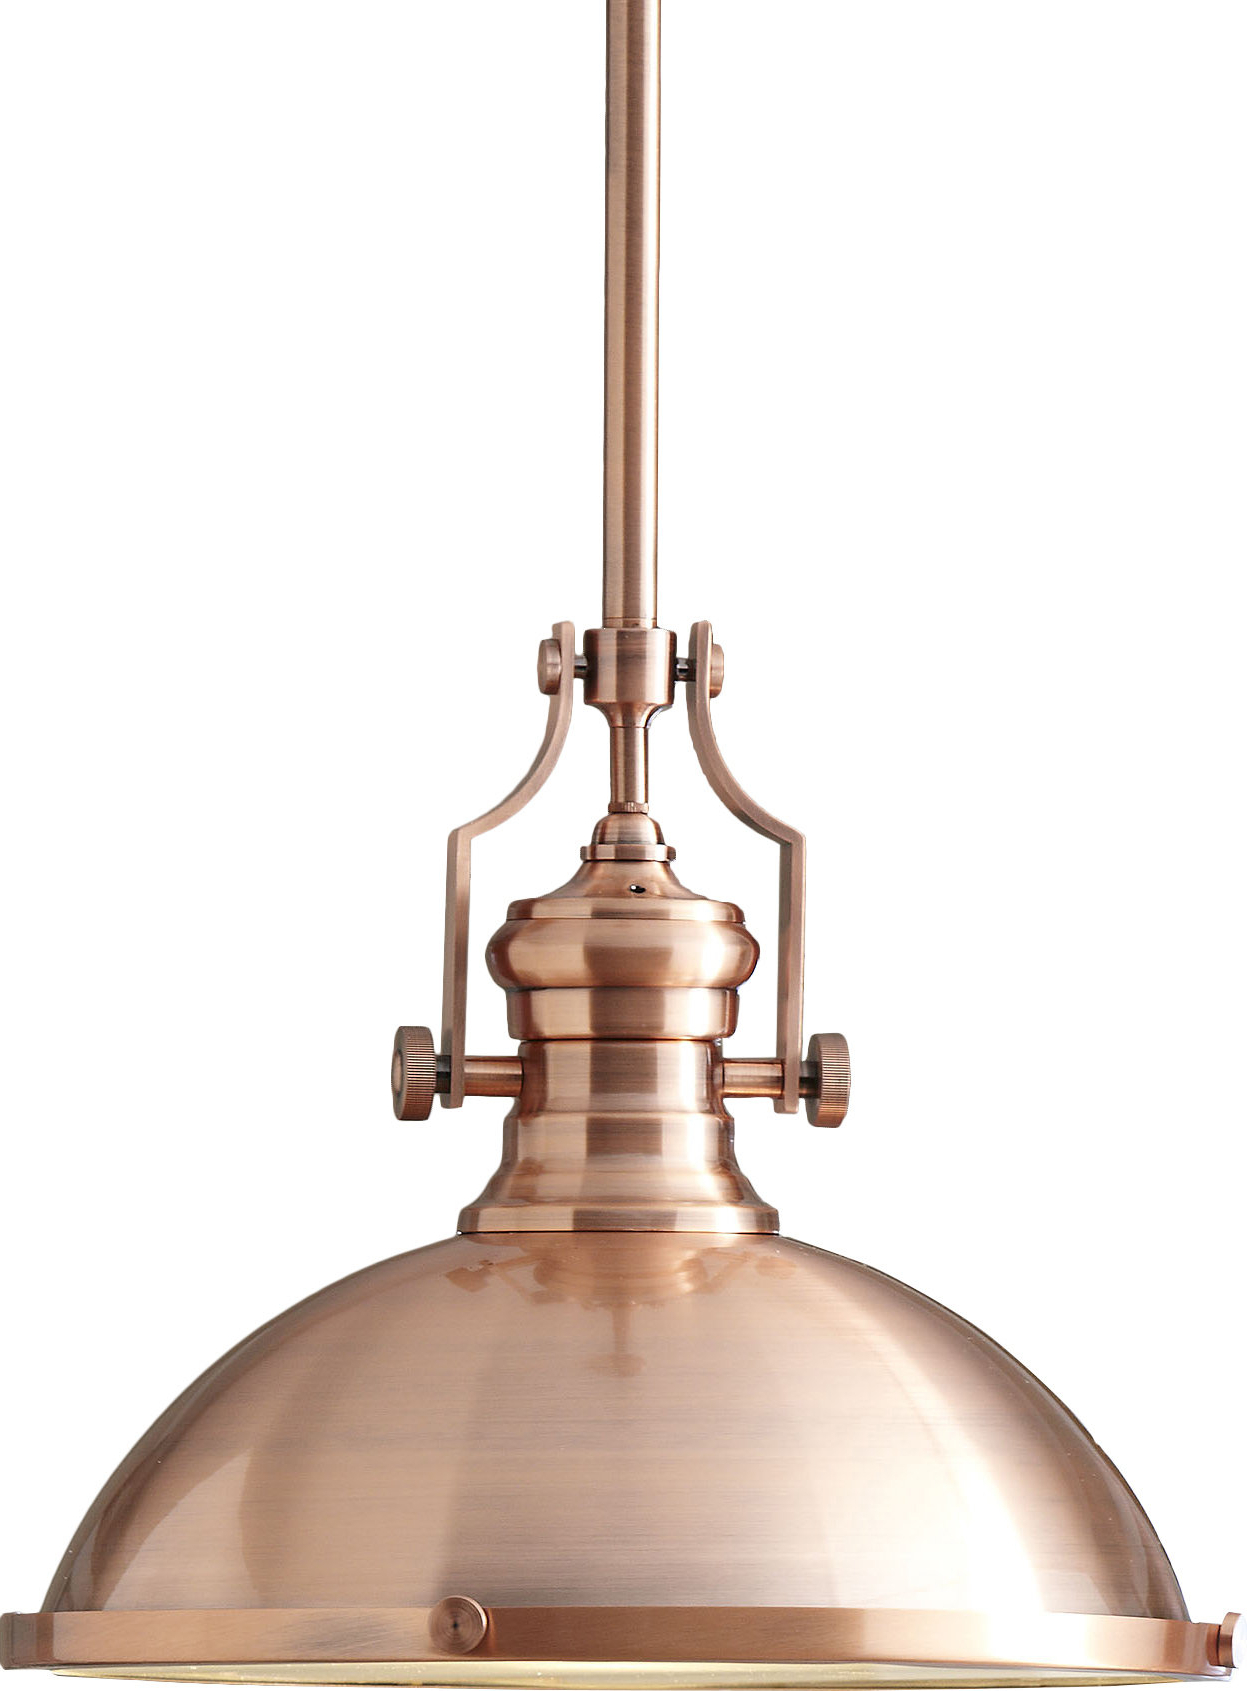 Granville 3 Light Single Dome Pendants Intended For 2019 Birch Lane™ Heritage 1 Light Single Dome Pendant (View 10 of 20)